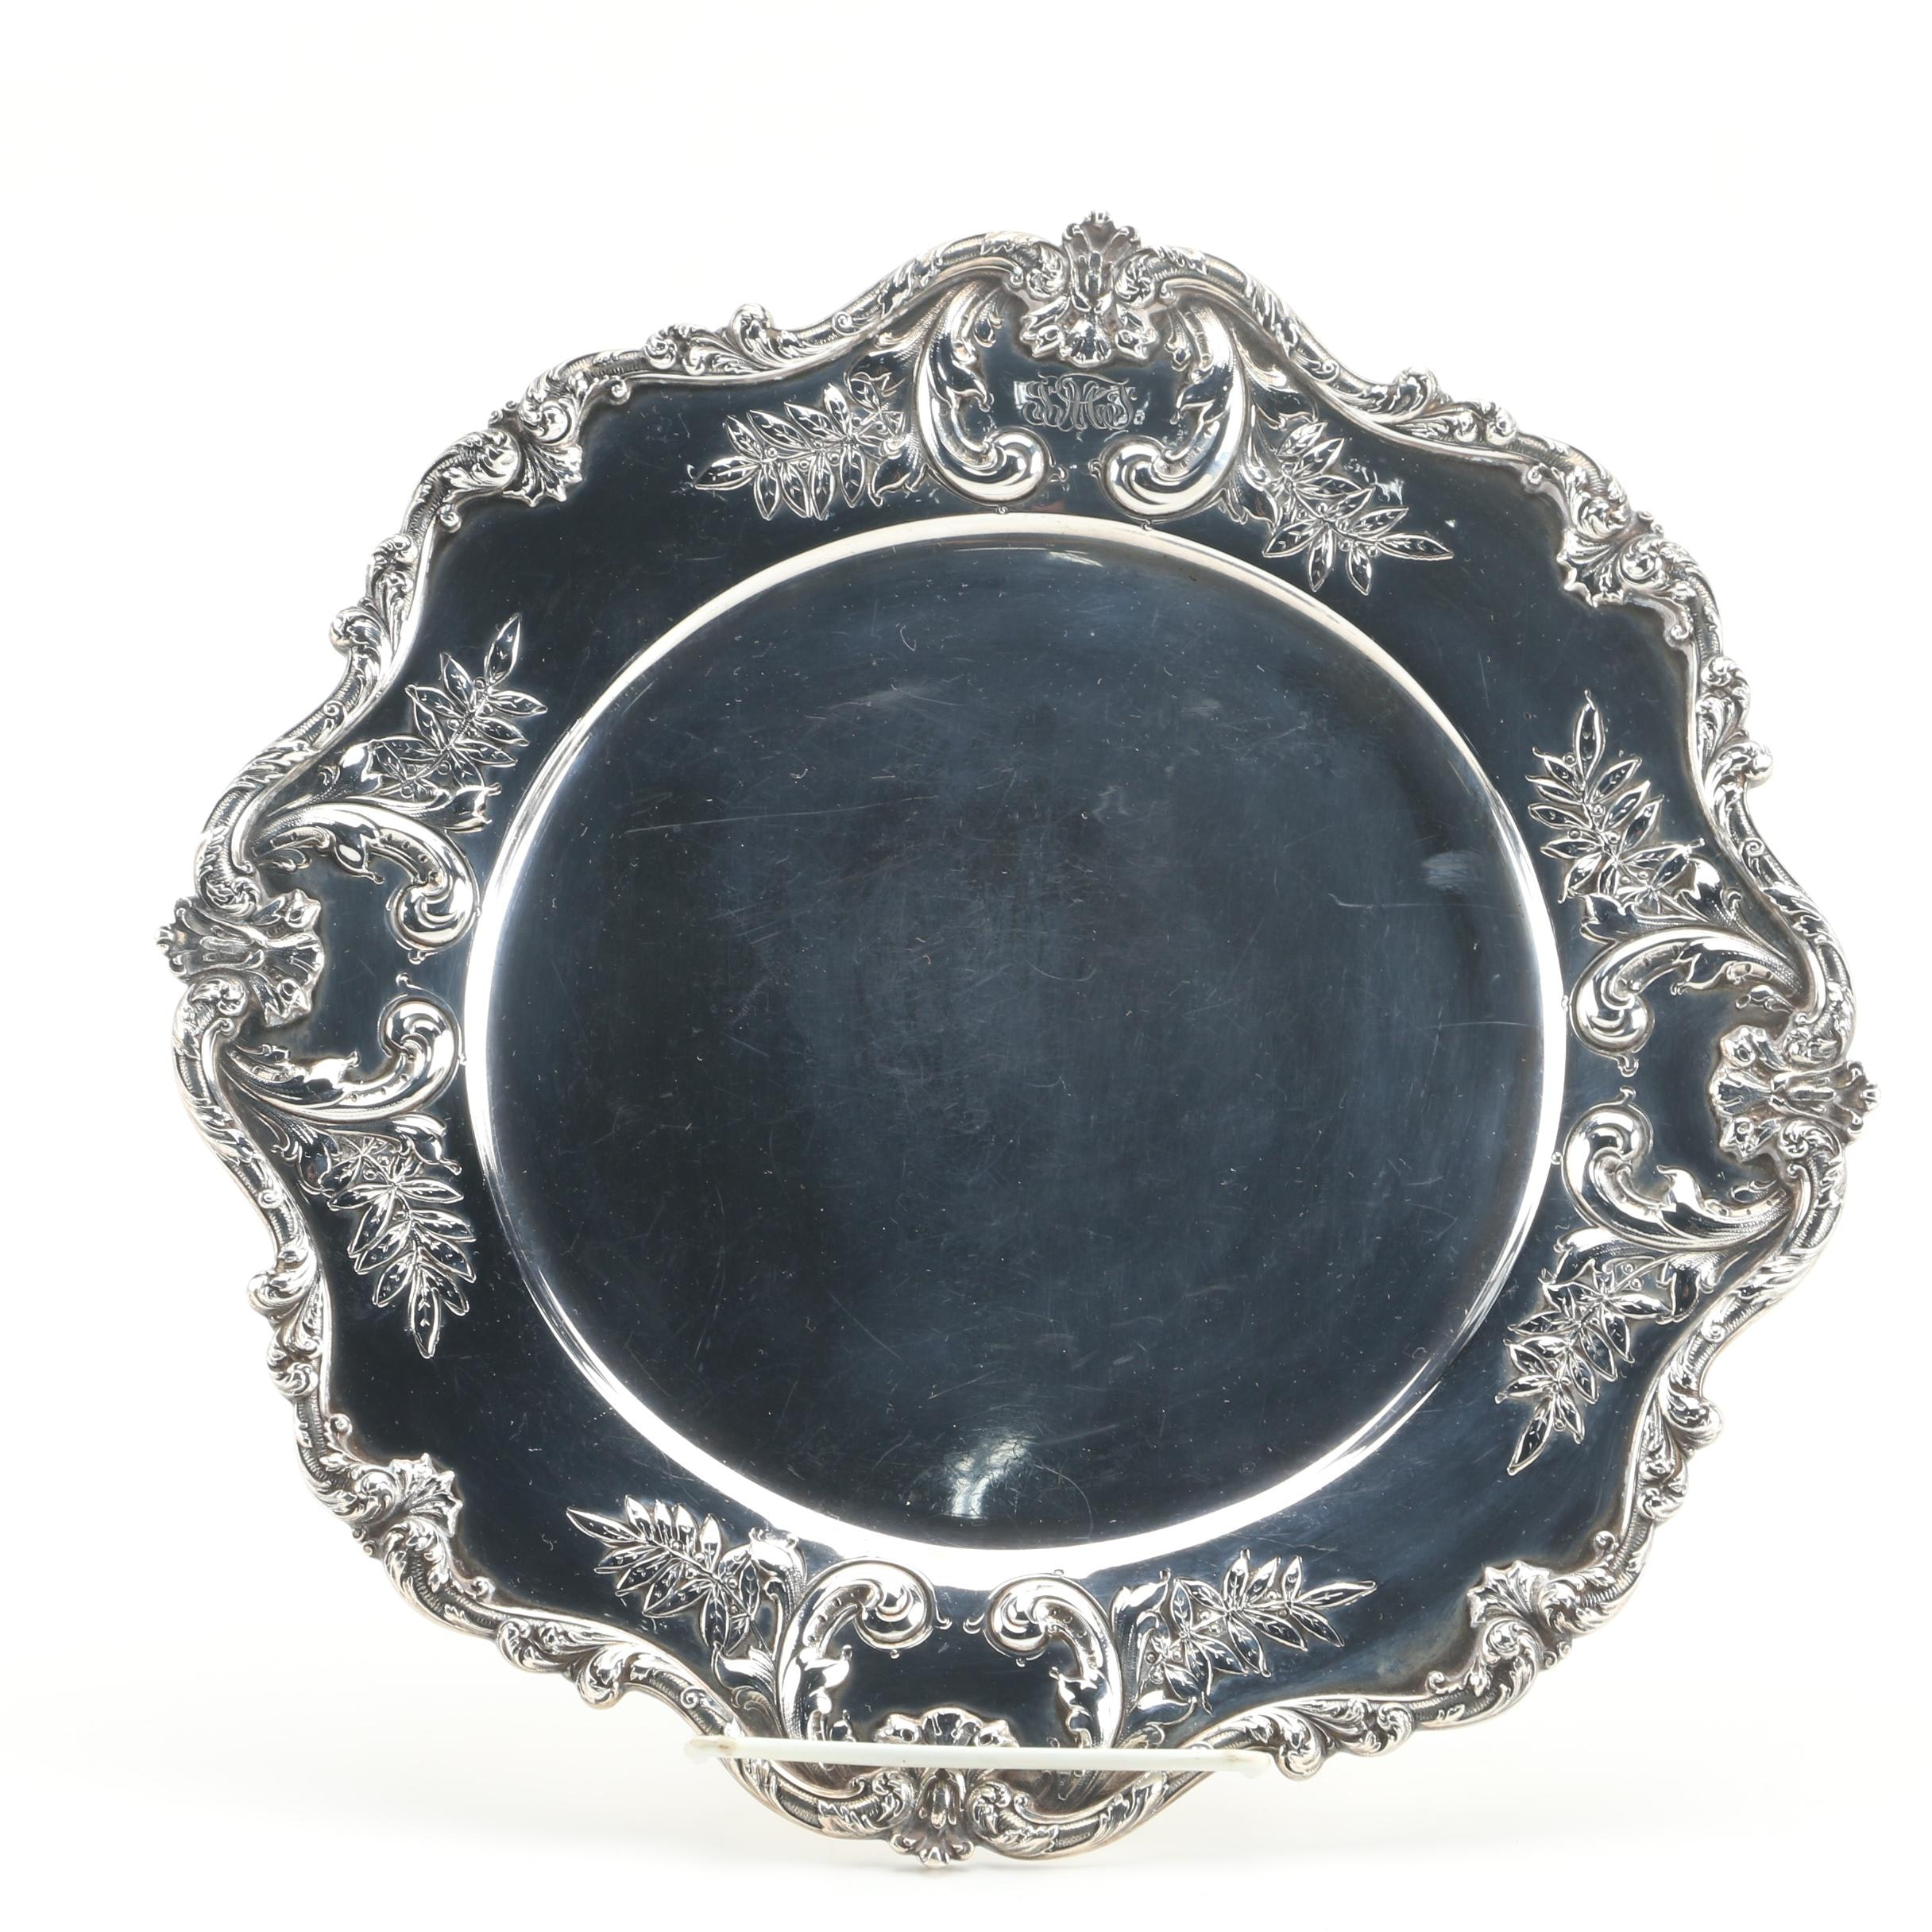 Early 20th Century Dominick & Haff Sterling Silver Repoussé Tray